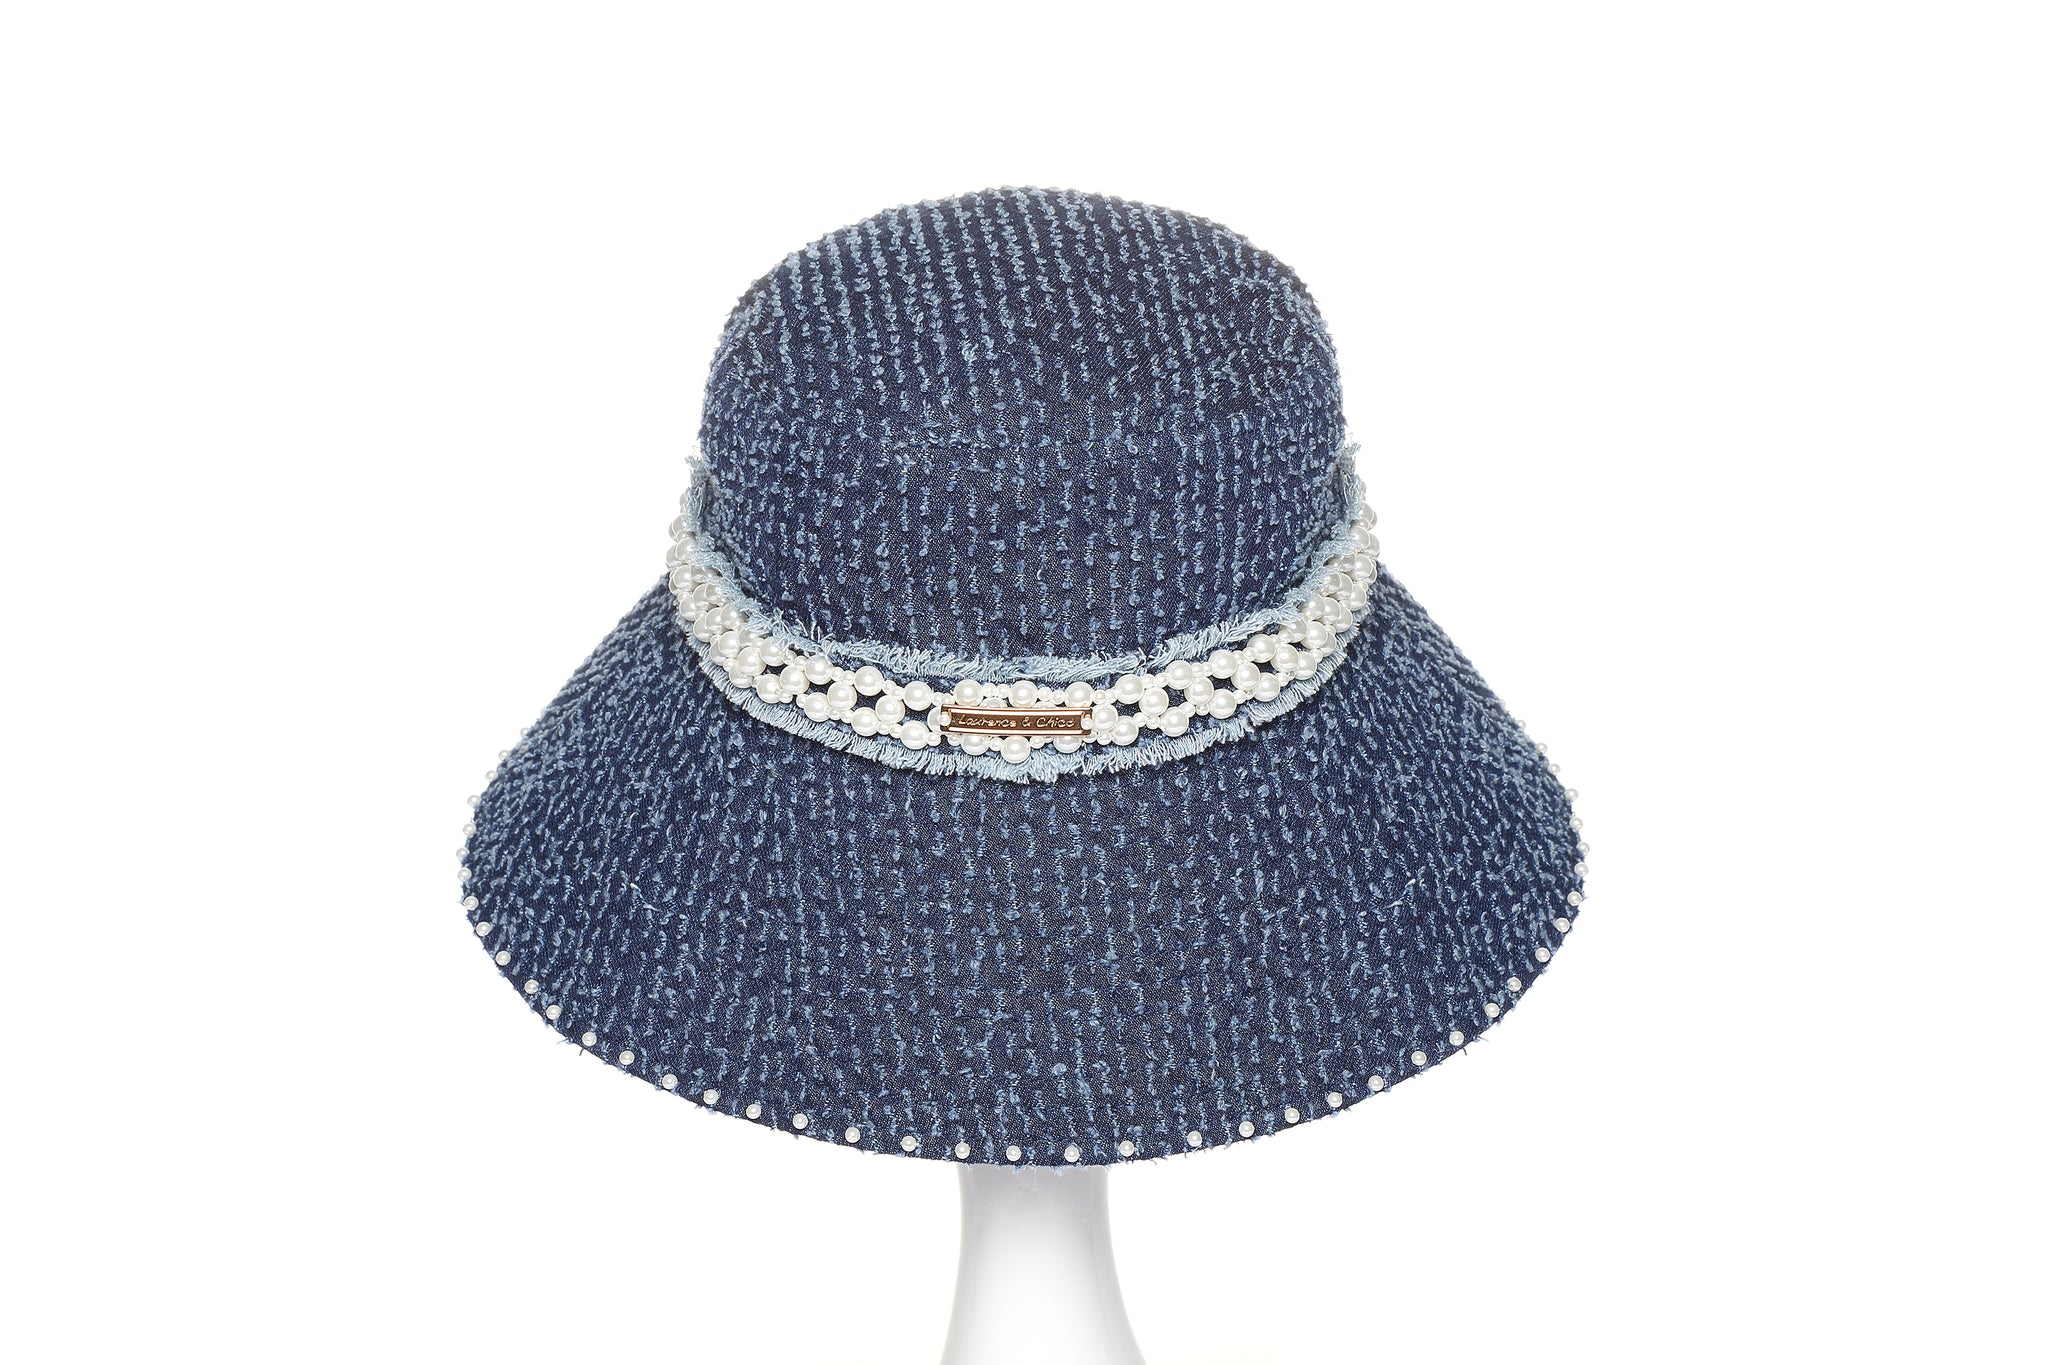 Denim Bucket Hat with Pearl Embellishments, Long Brim, Dark Blue